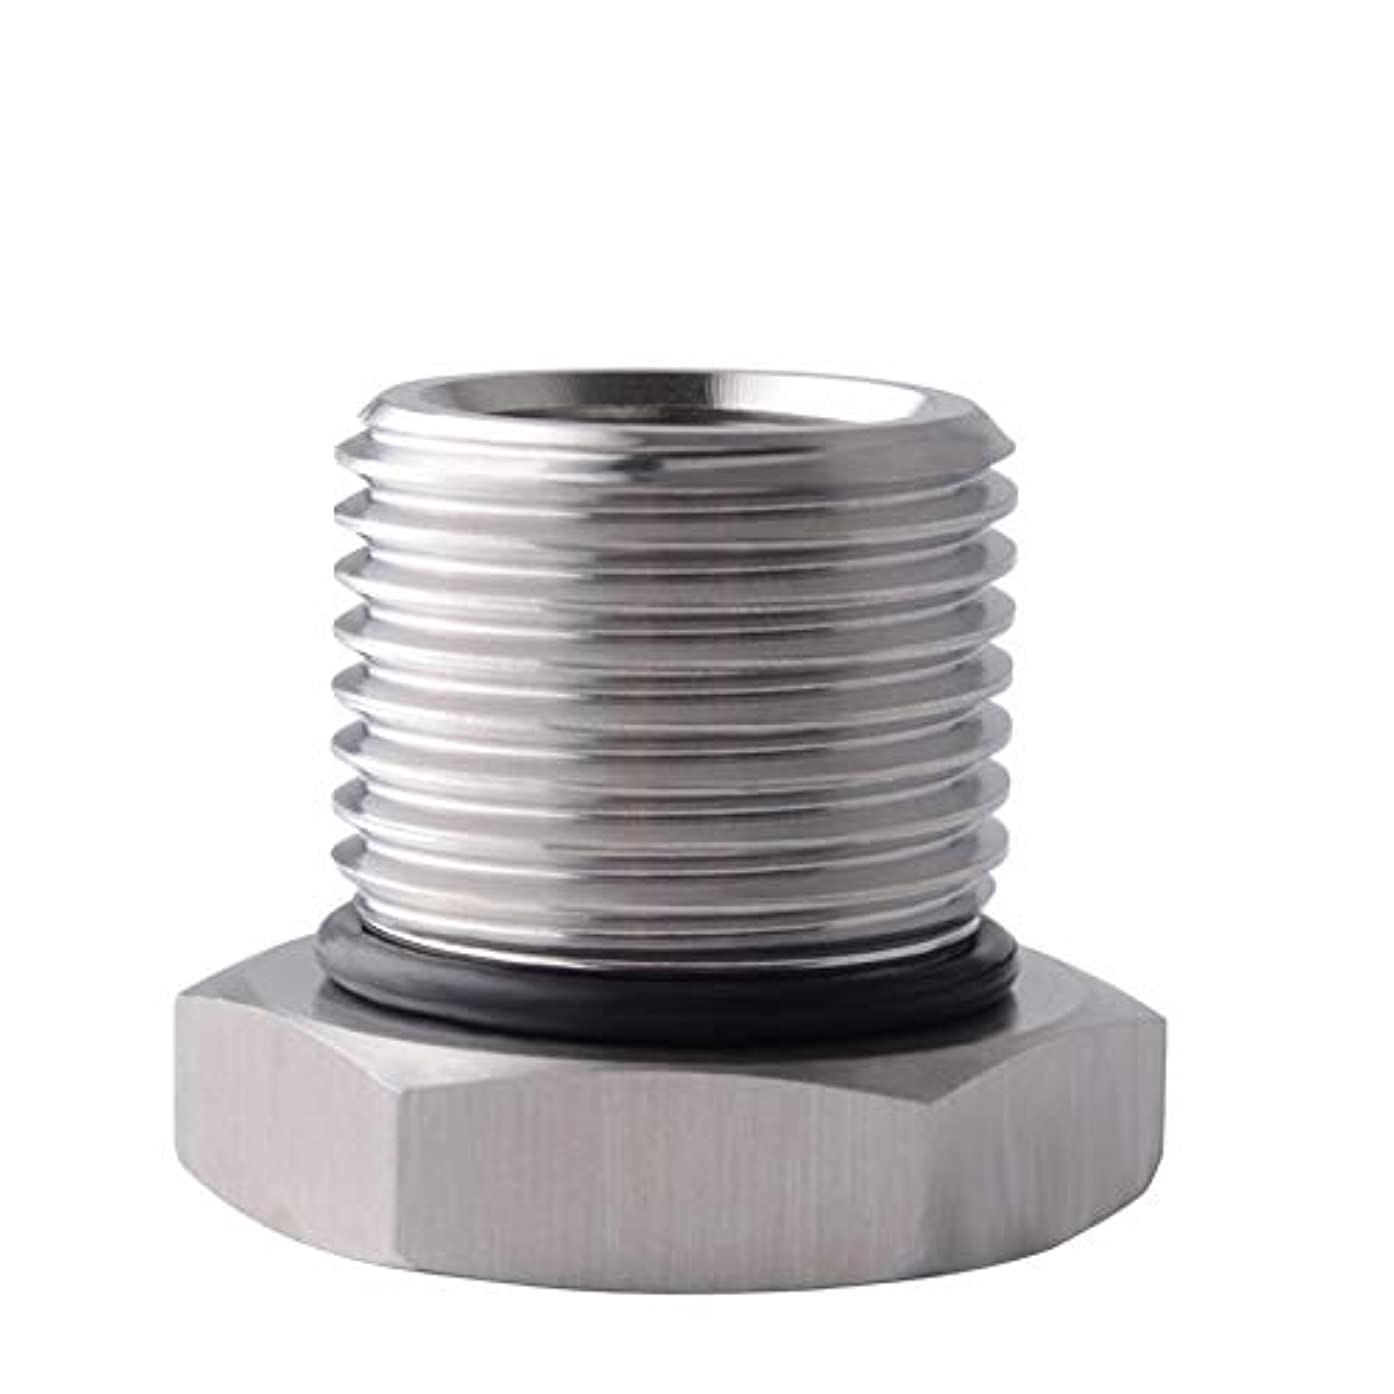 HERCHR Automobile Oil Filter Threaded Stainless Steel Durable Resistant Adapter,Silver